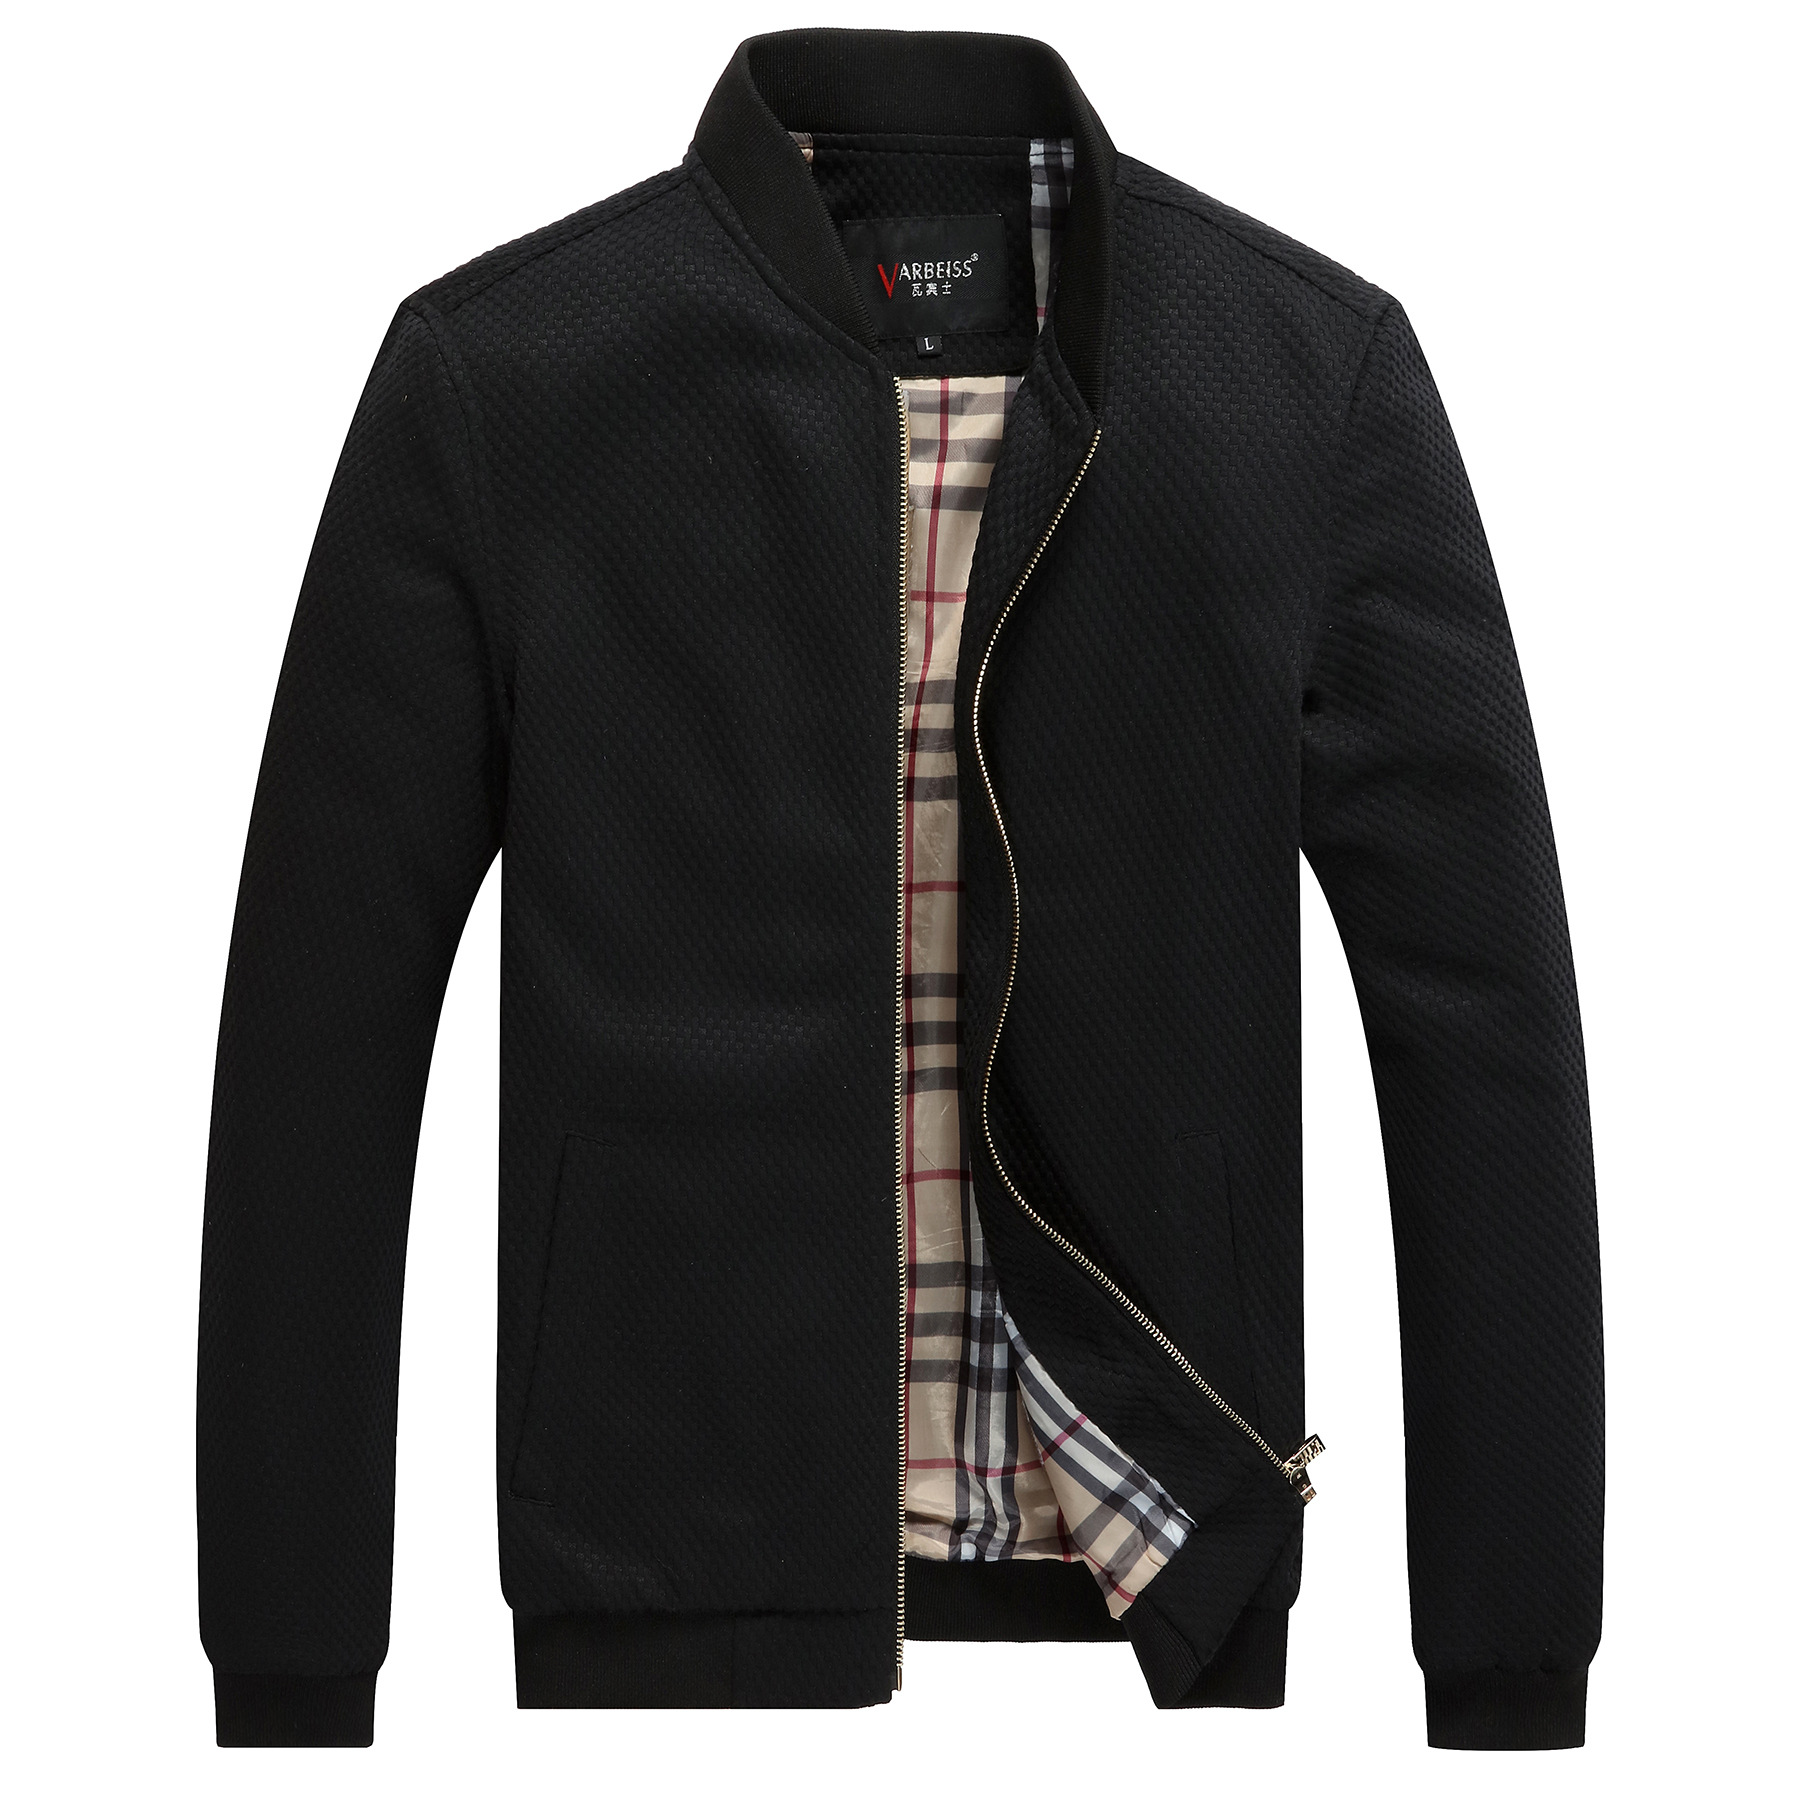 autumn 2018 the new mens collar jacket youth breathable loose hot style jacket